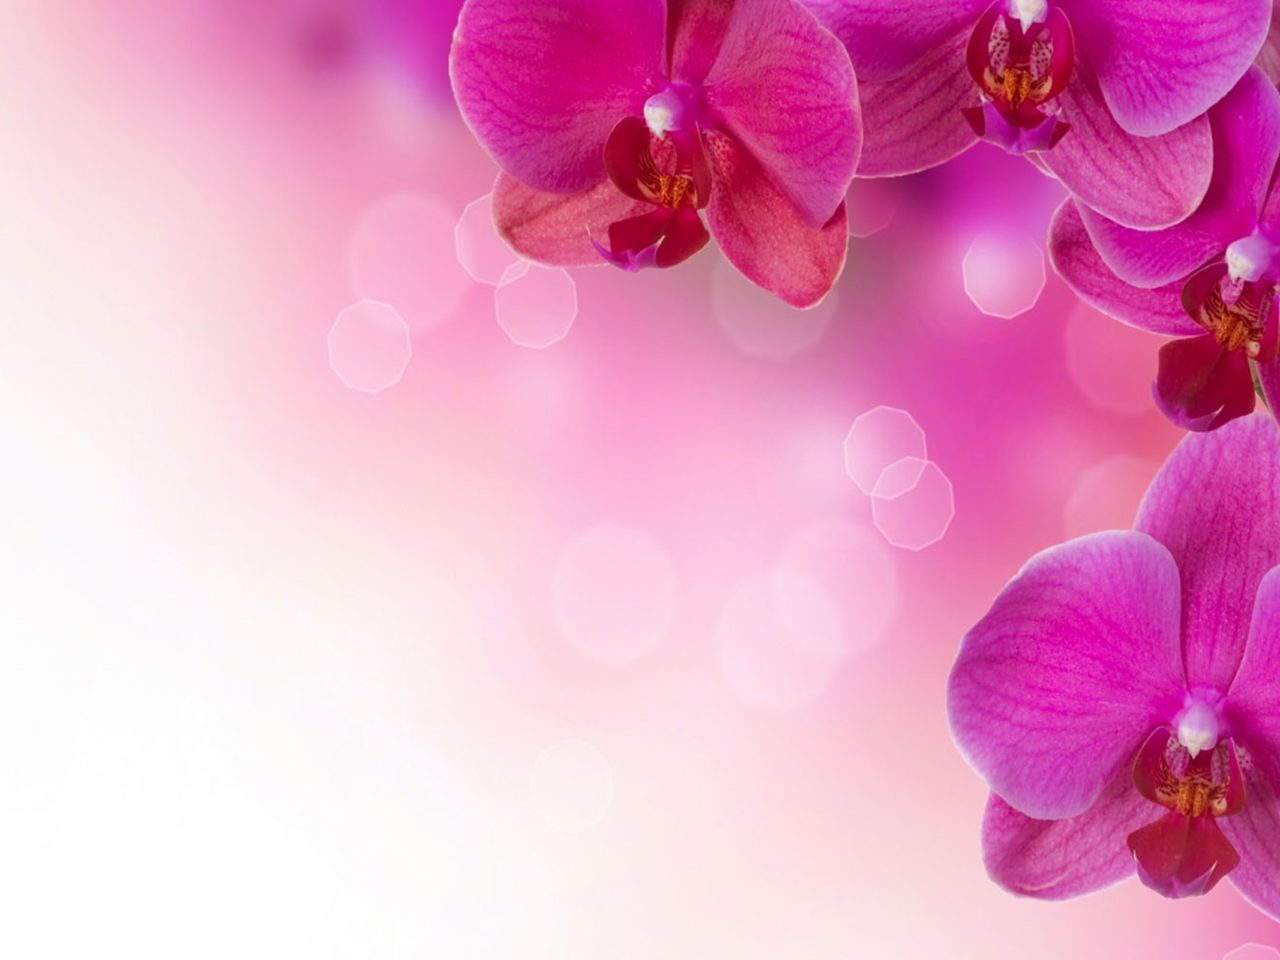 Fall Of The Autumn Hd Wallpaper Orchid Flower Petals Ultra Hd Desktop 2560x1600